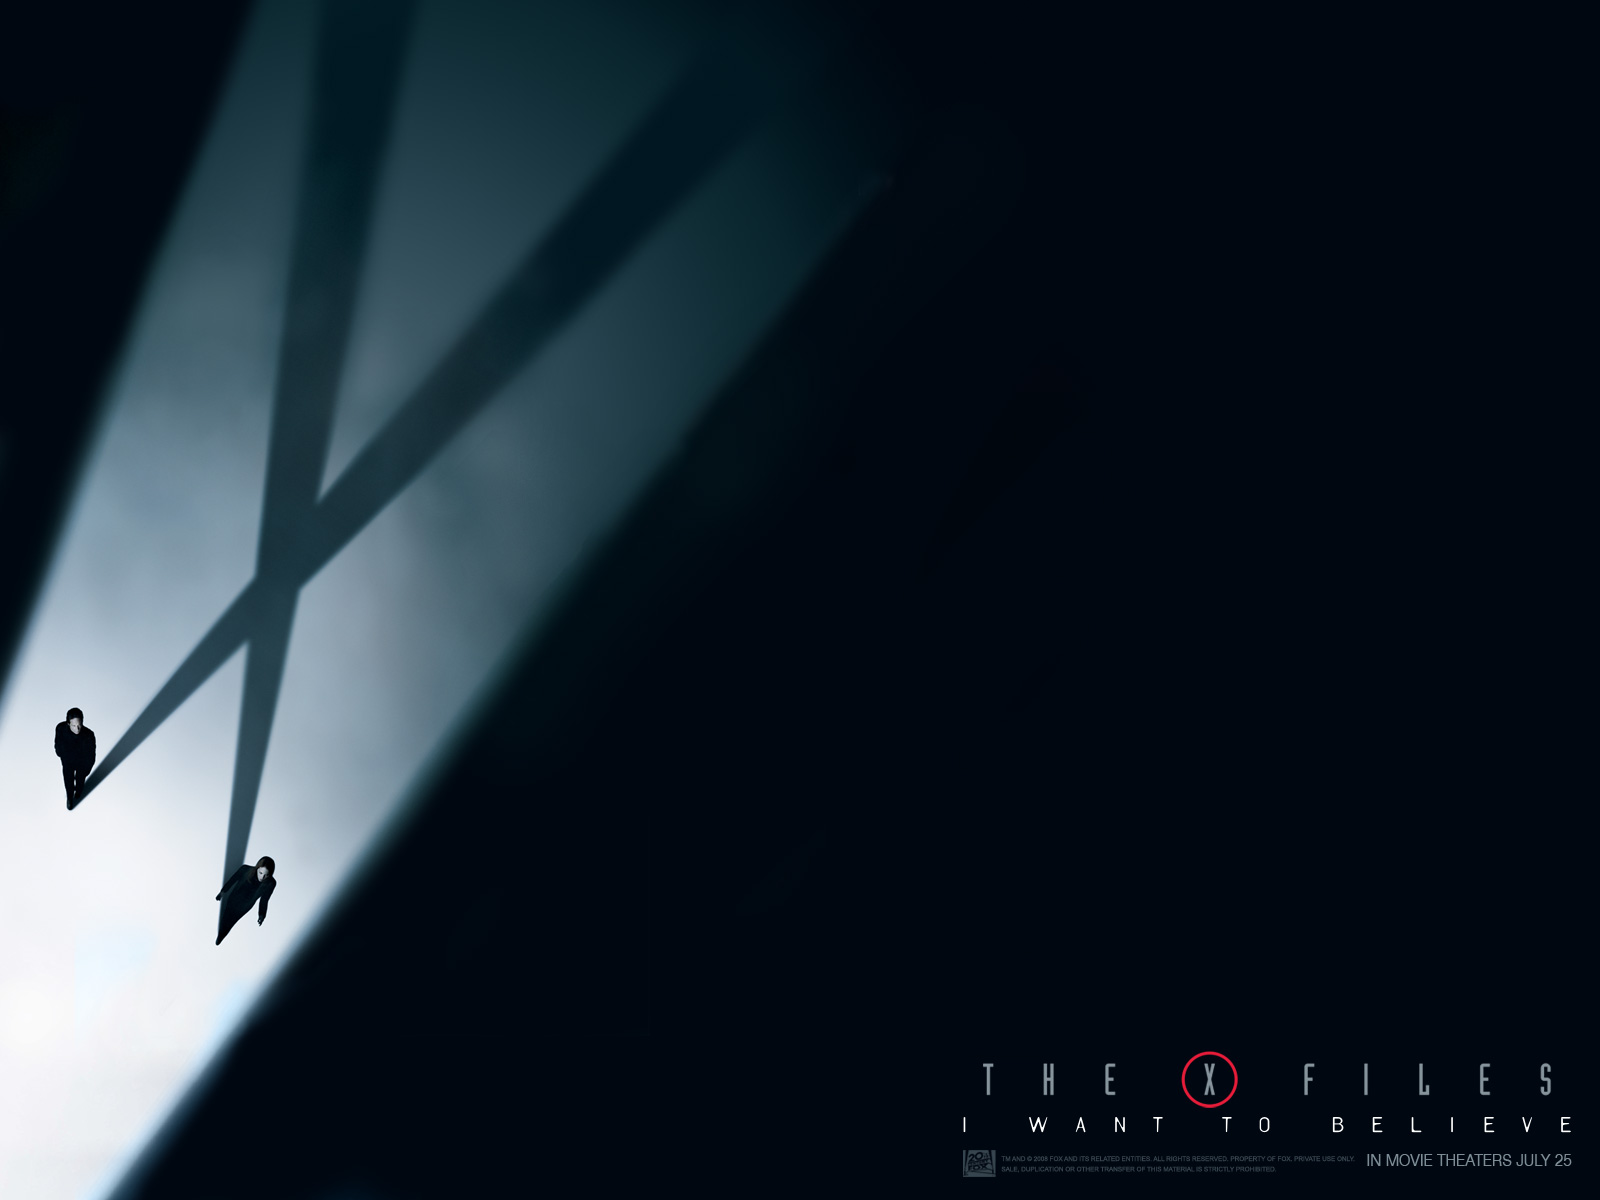 X Files Wallpaper I Want To Believe The X Files: I Want to...